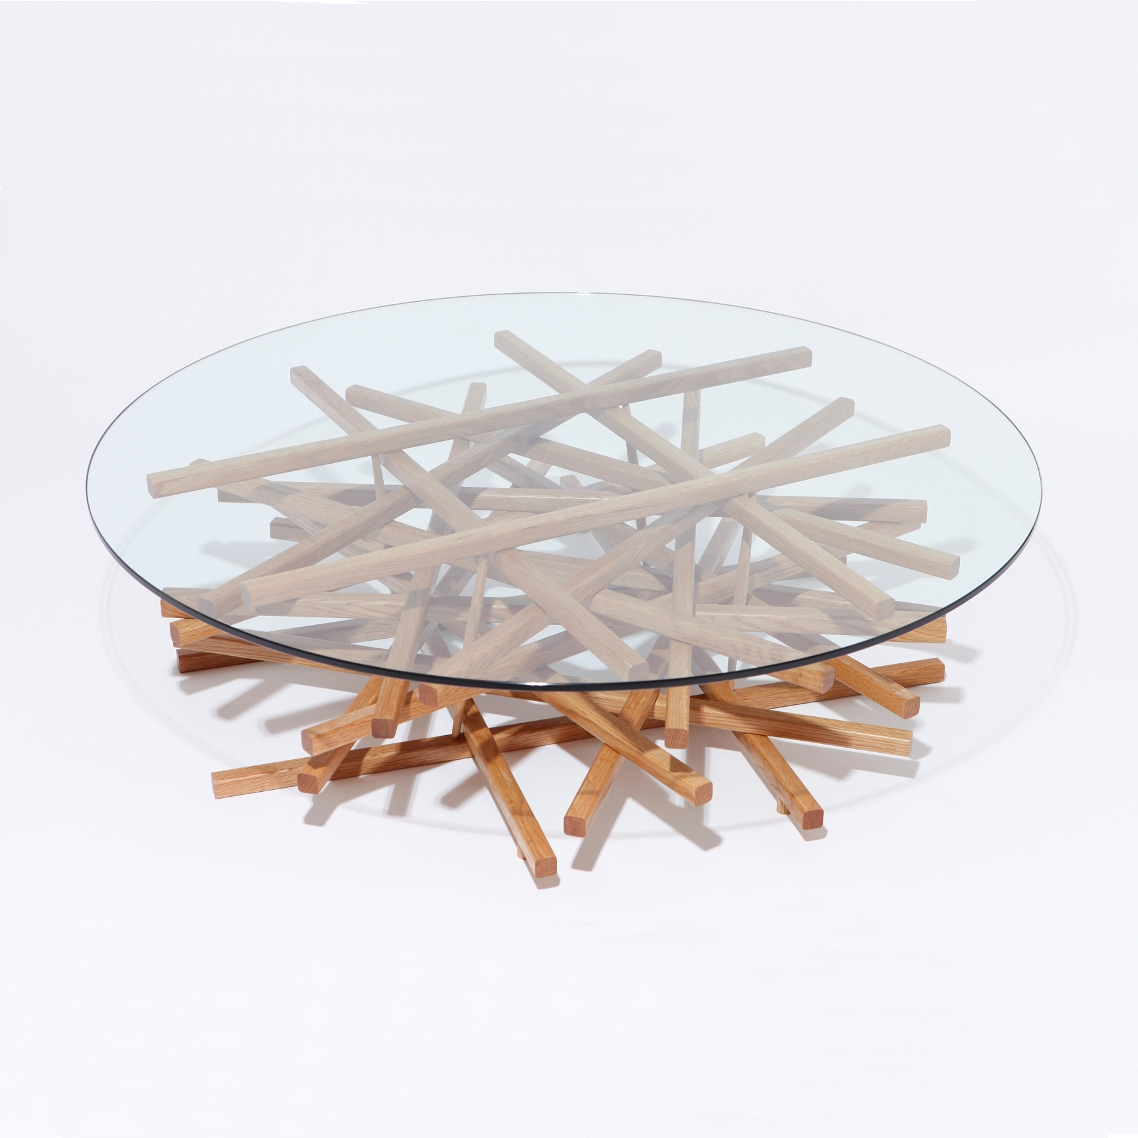 Nest Coffee Table By Macmaster Design At